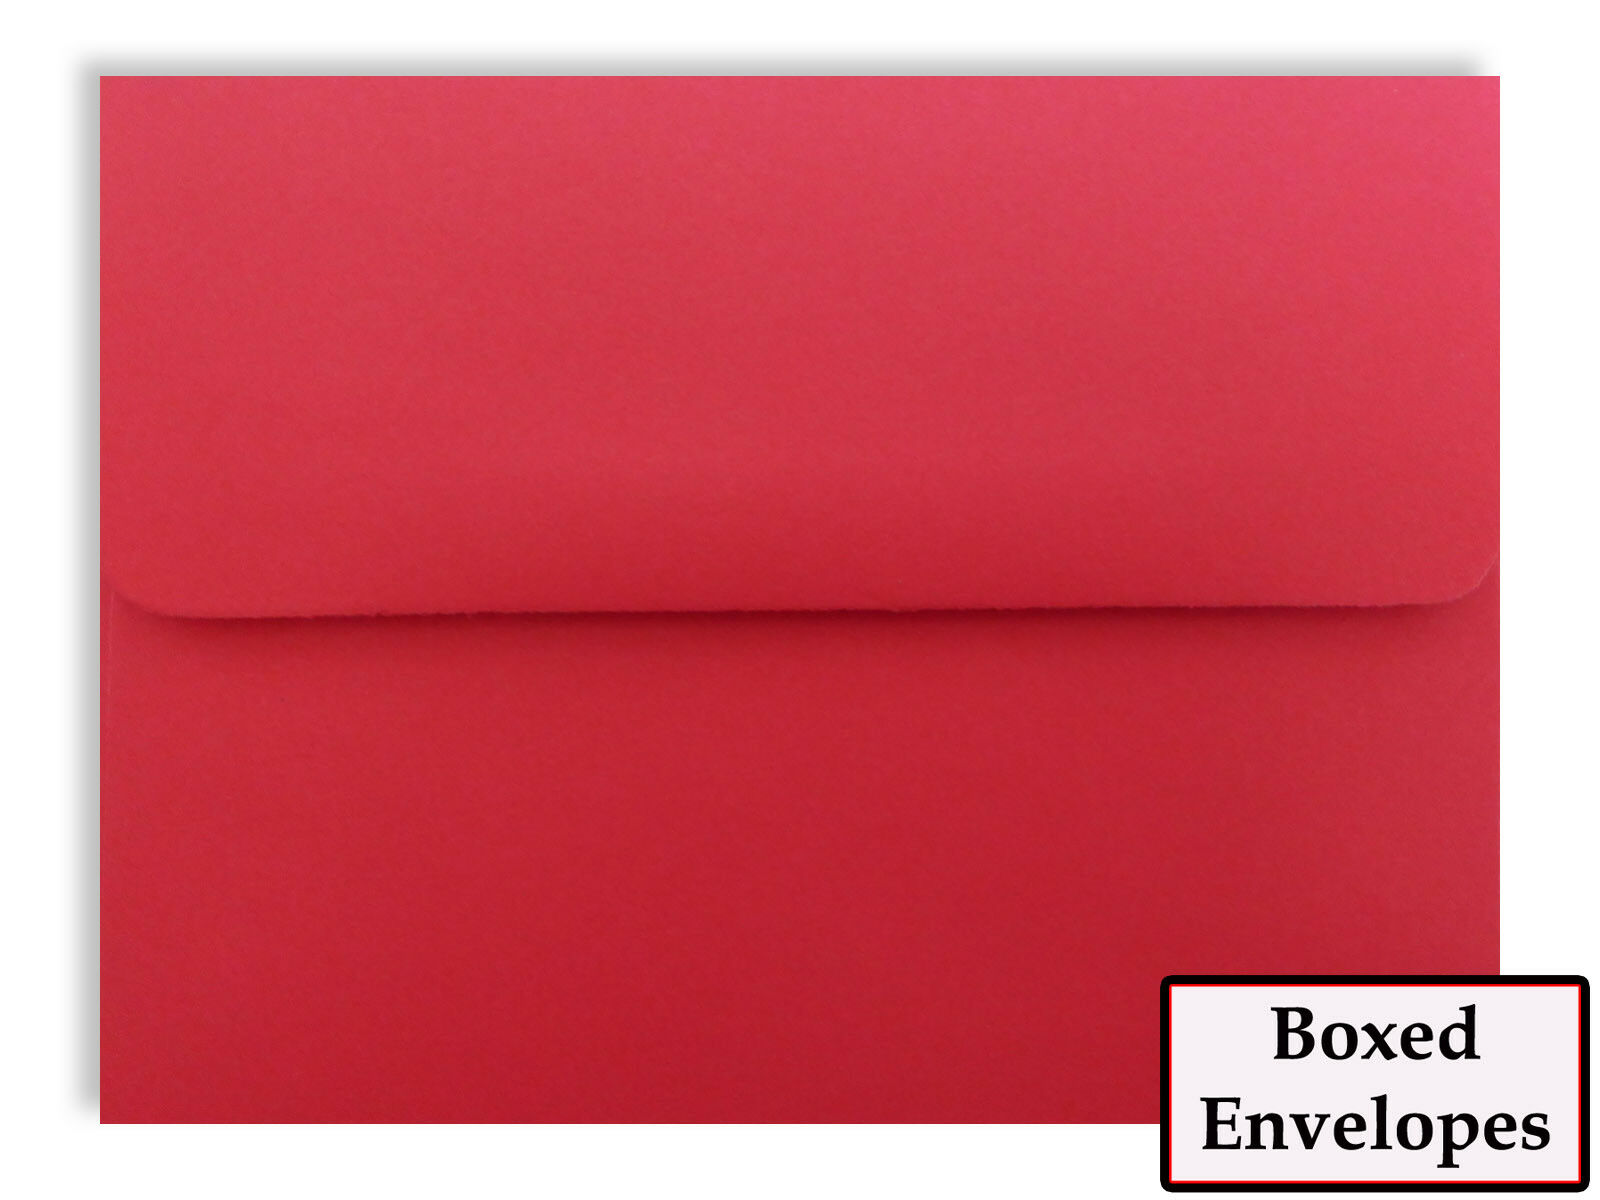 500 Boxed Holiday rouge Envelopes for Cards Invitations Announcements Shower